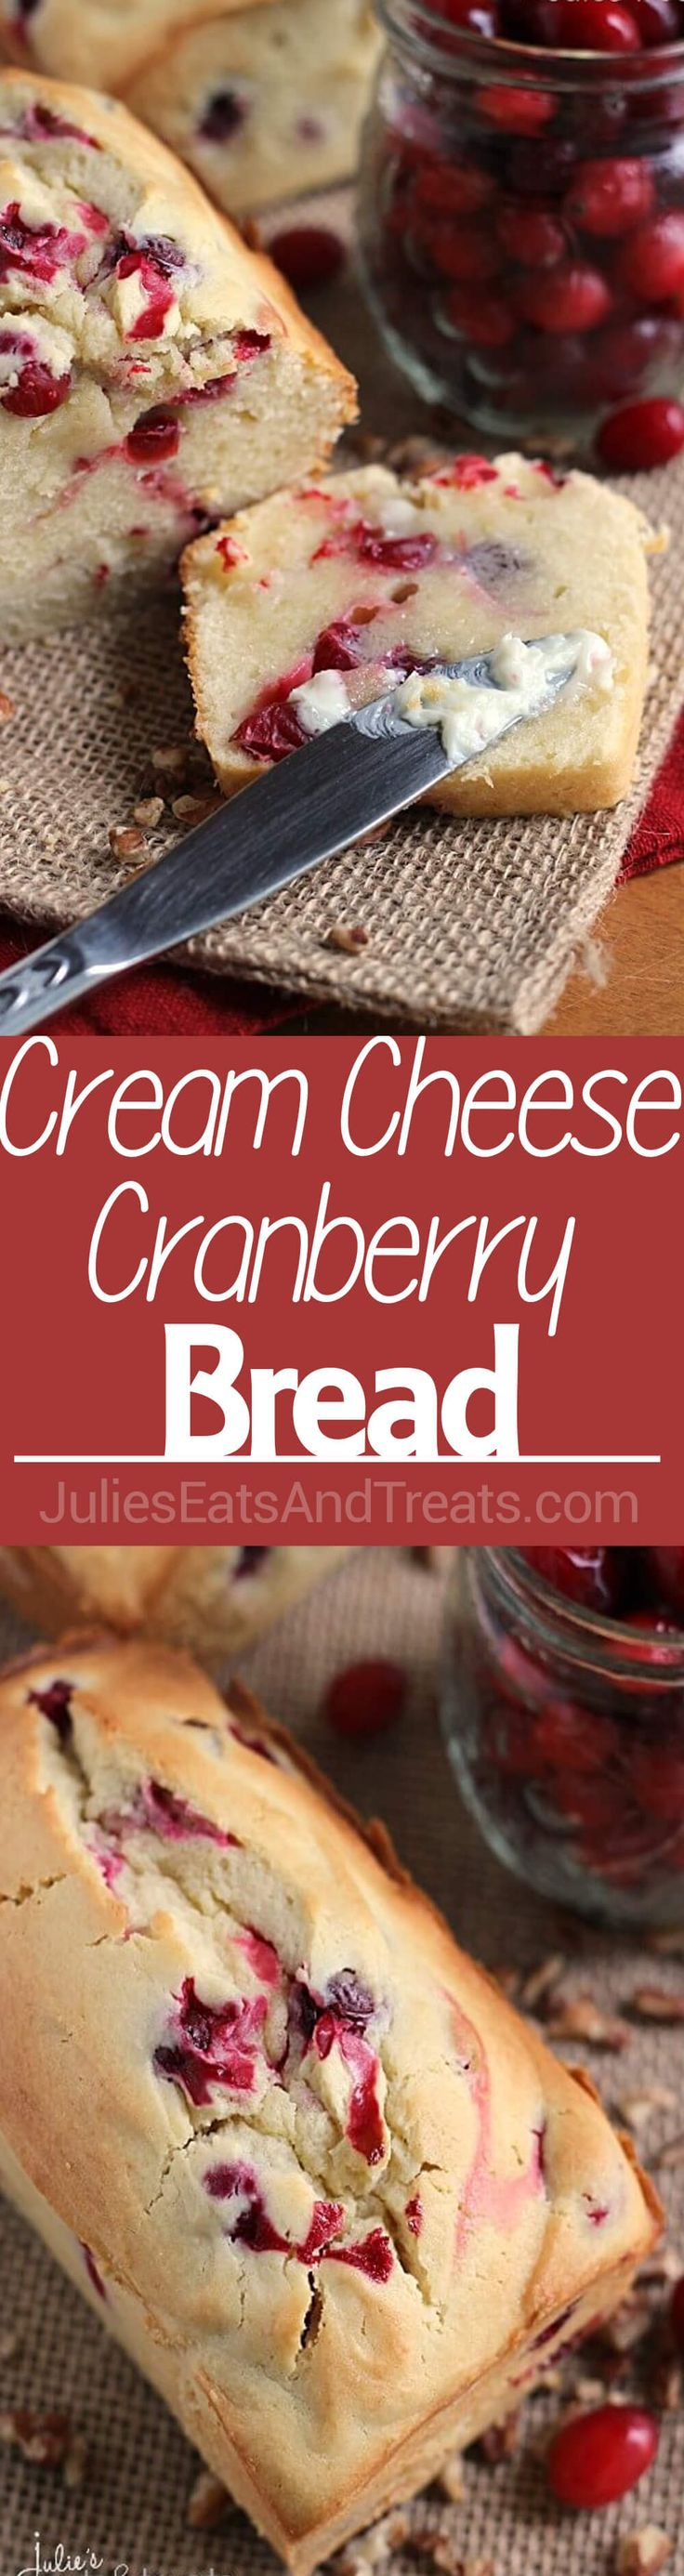 Cream Cheese Cranberry Bread Recipe ~ Amazingly Soft and Tender Quick Bread Stuffed with Tart Cranberries! ~ http://www.julieseatsandtreats.com